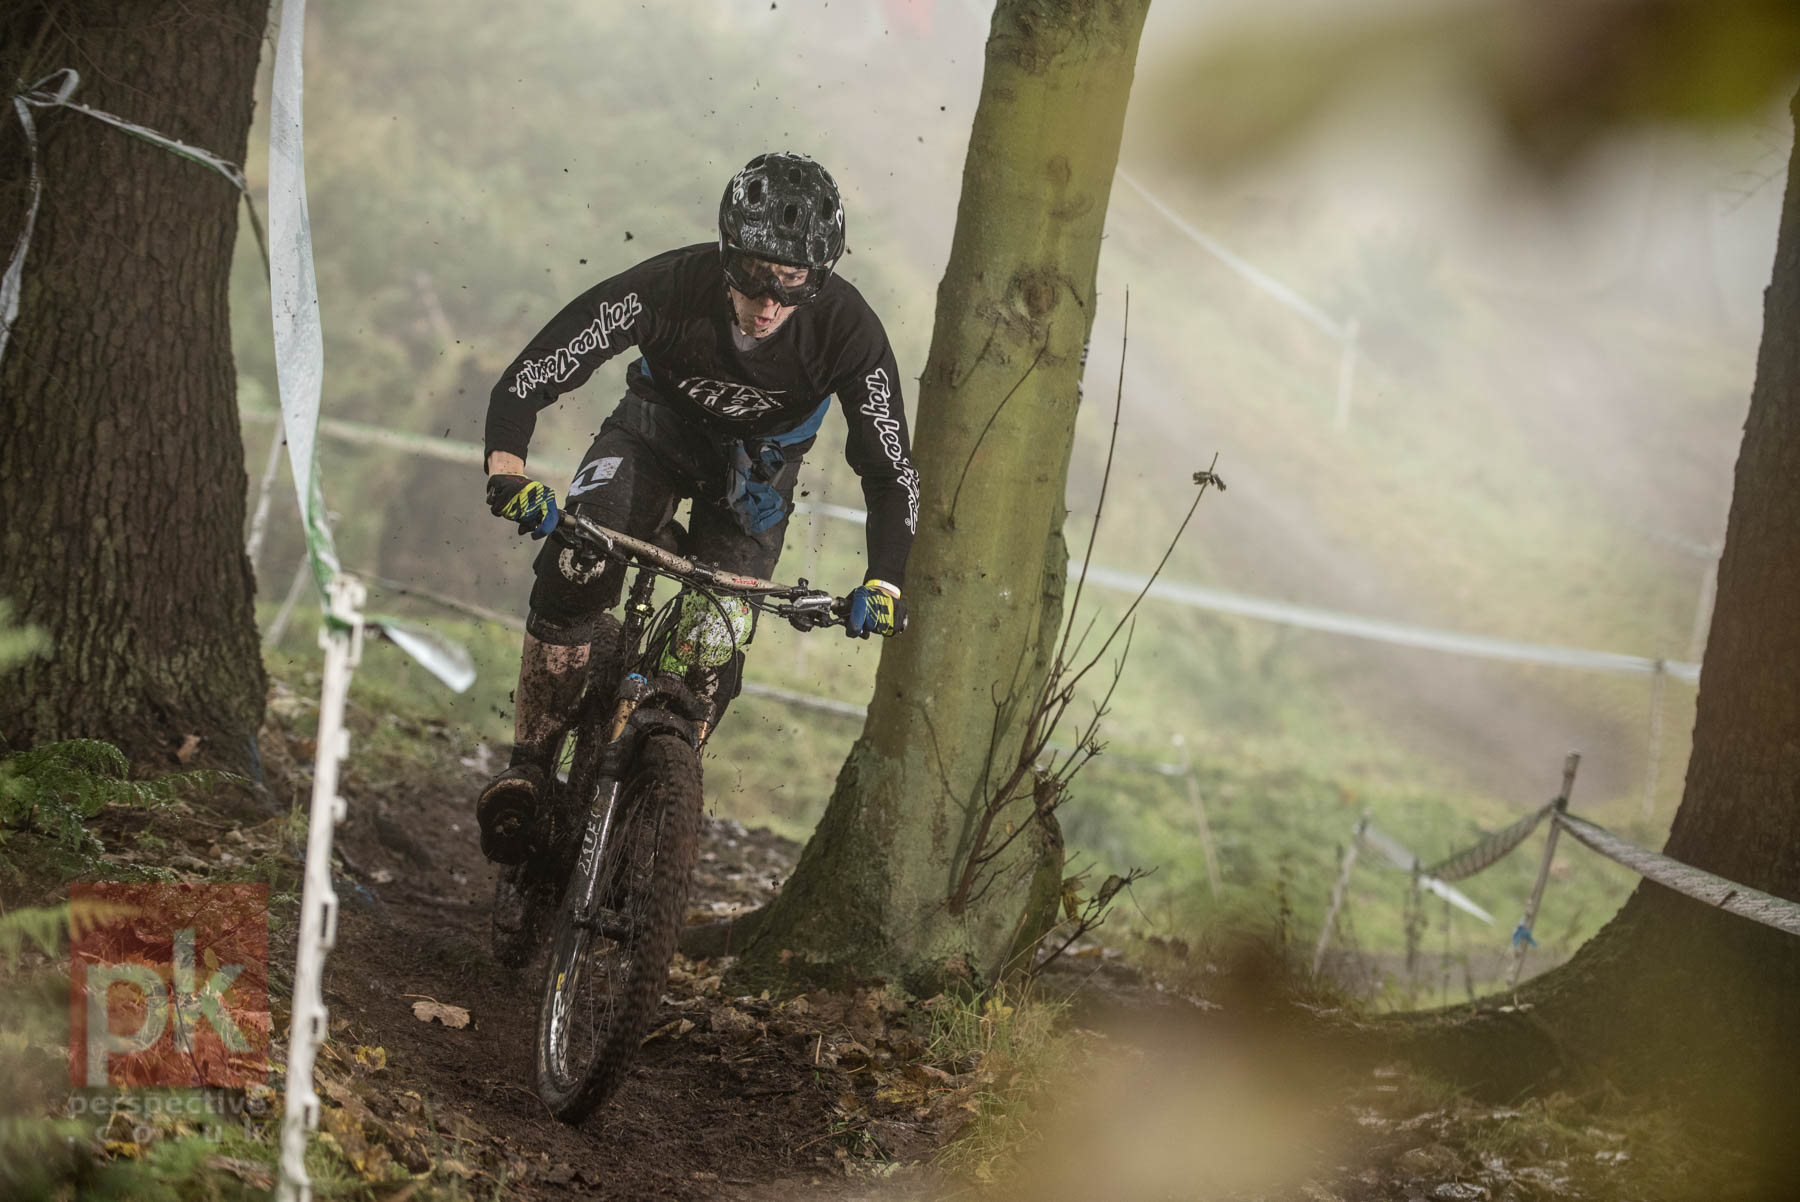 The Fair City Enduro in Perth proved a challenging shoot with fog creating a new level of atmosphere.